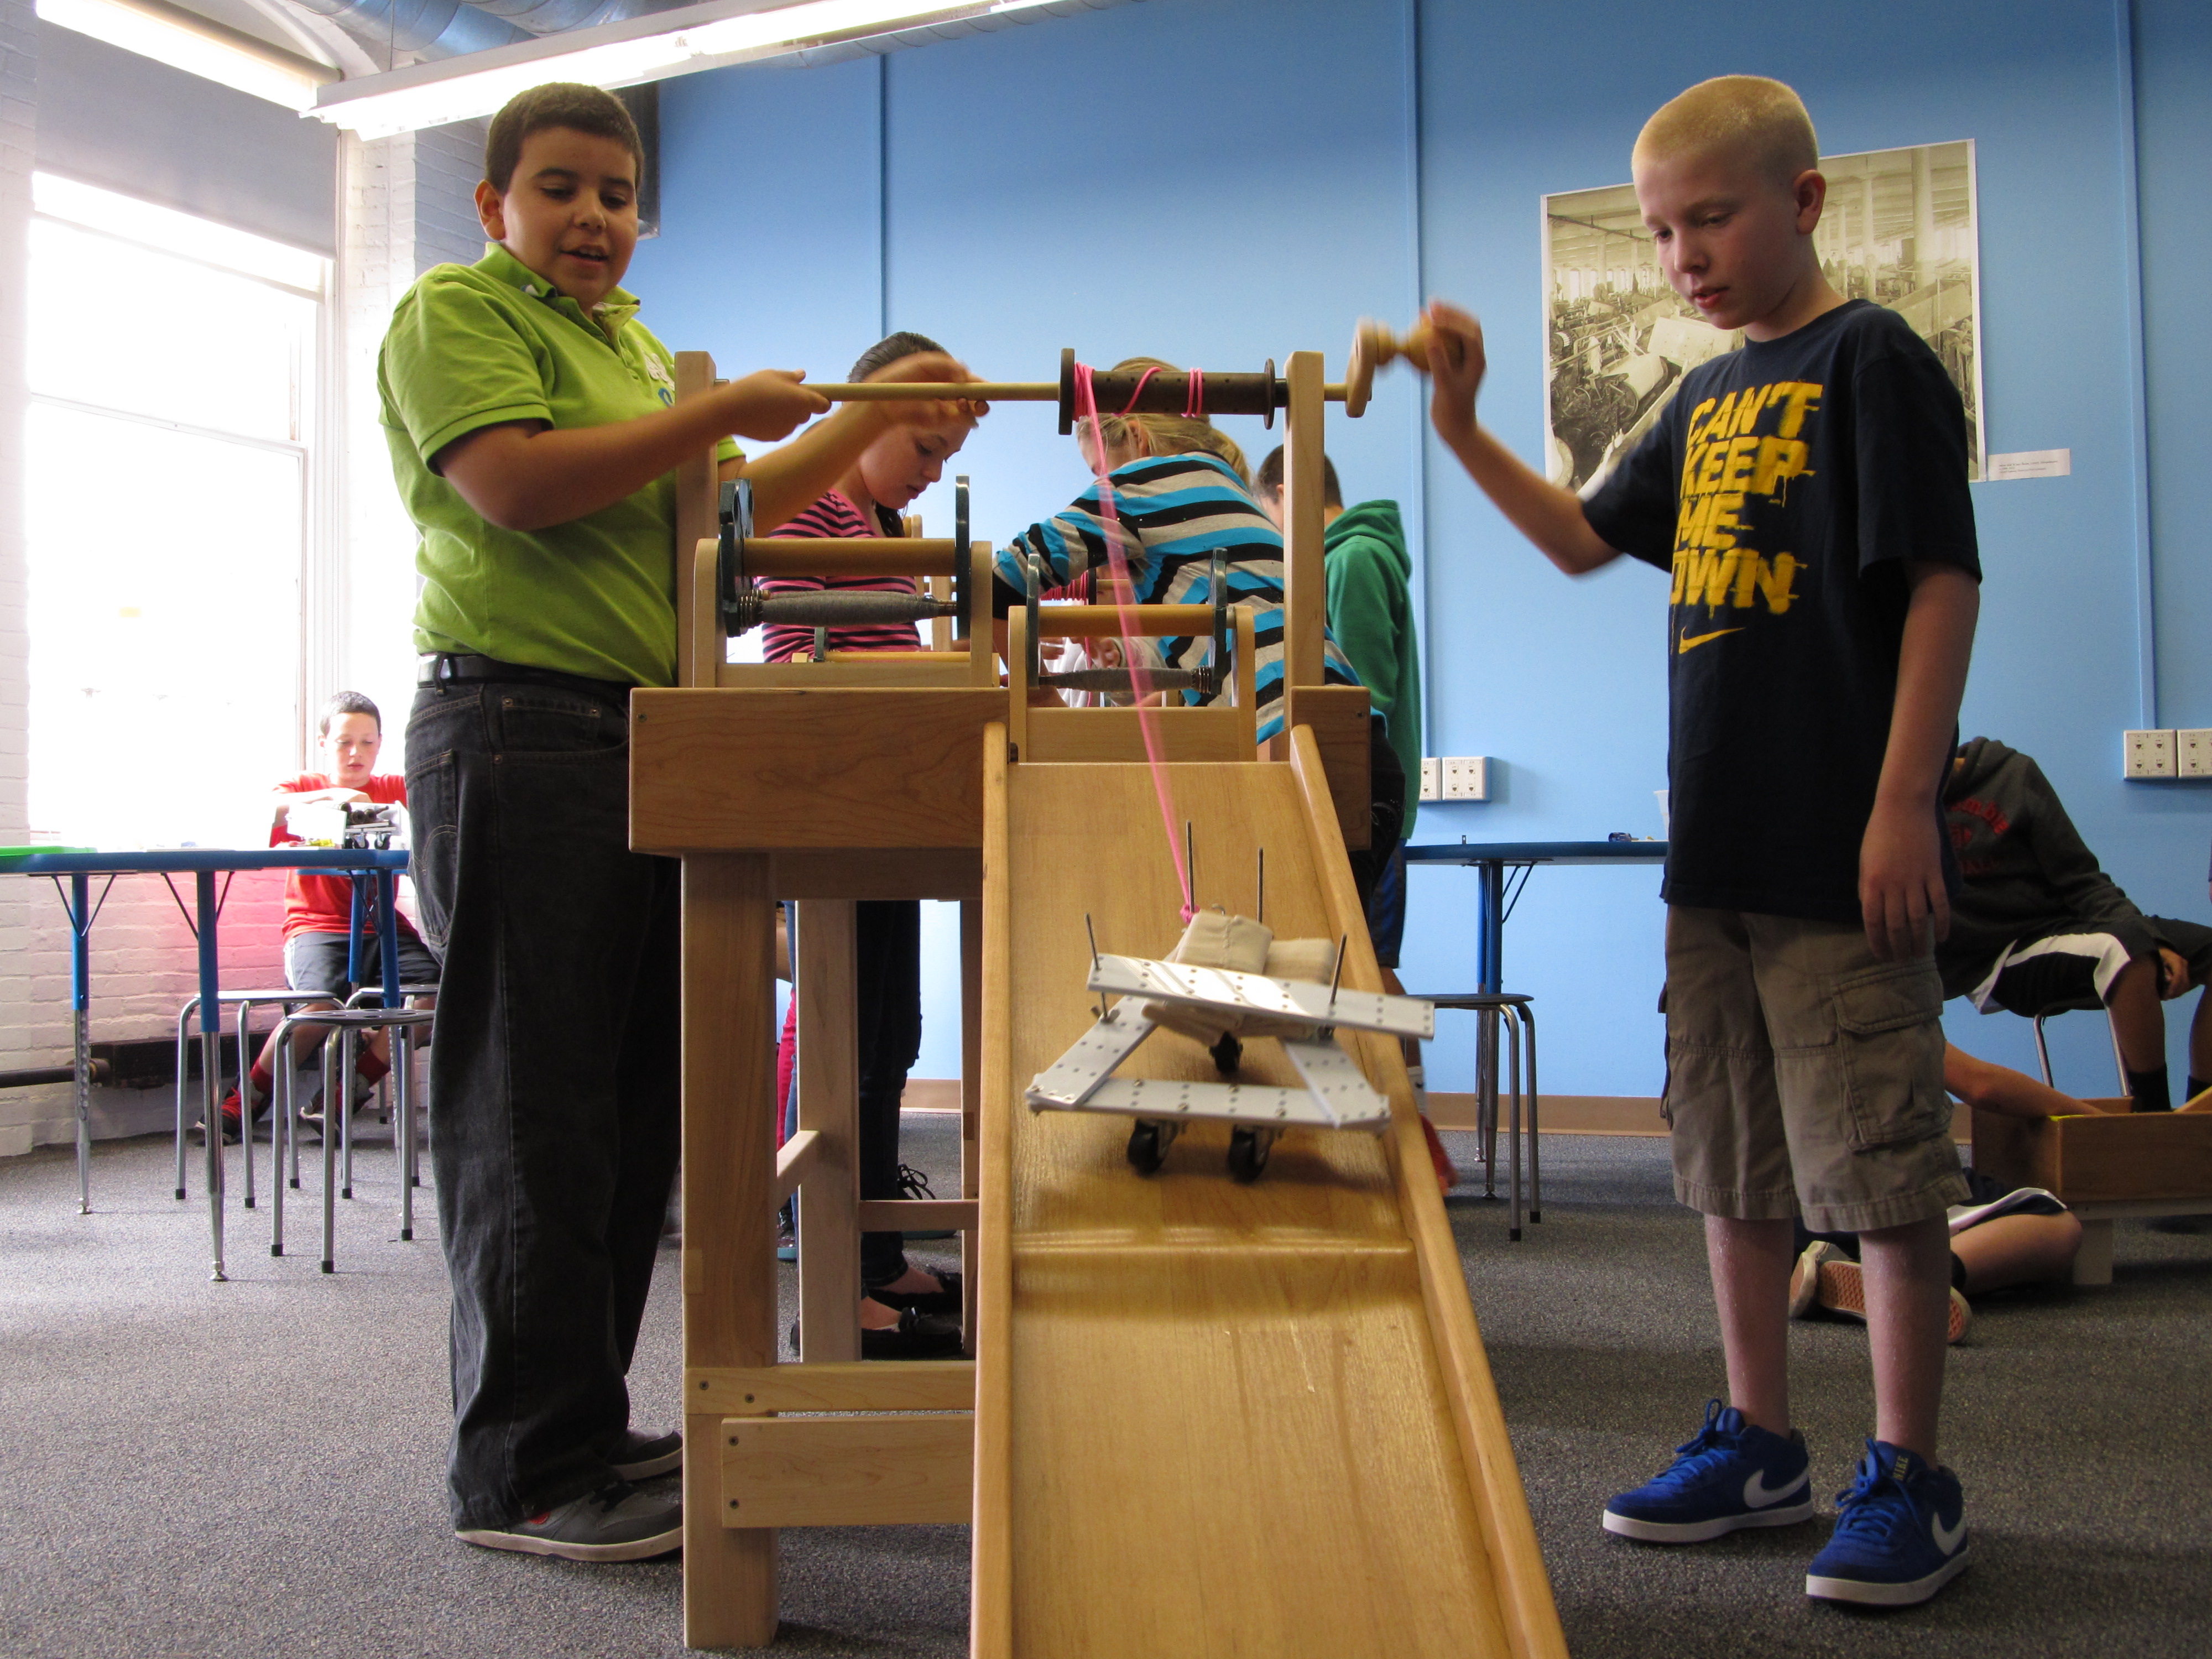 Two students work on an engineering project